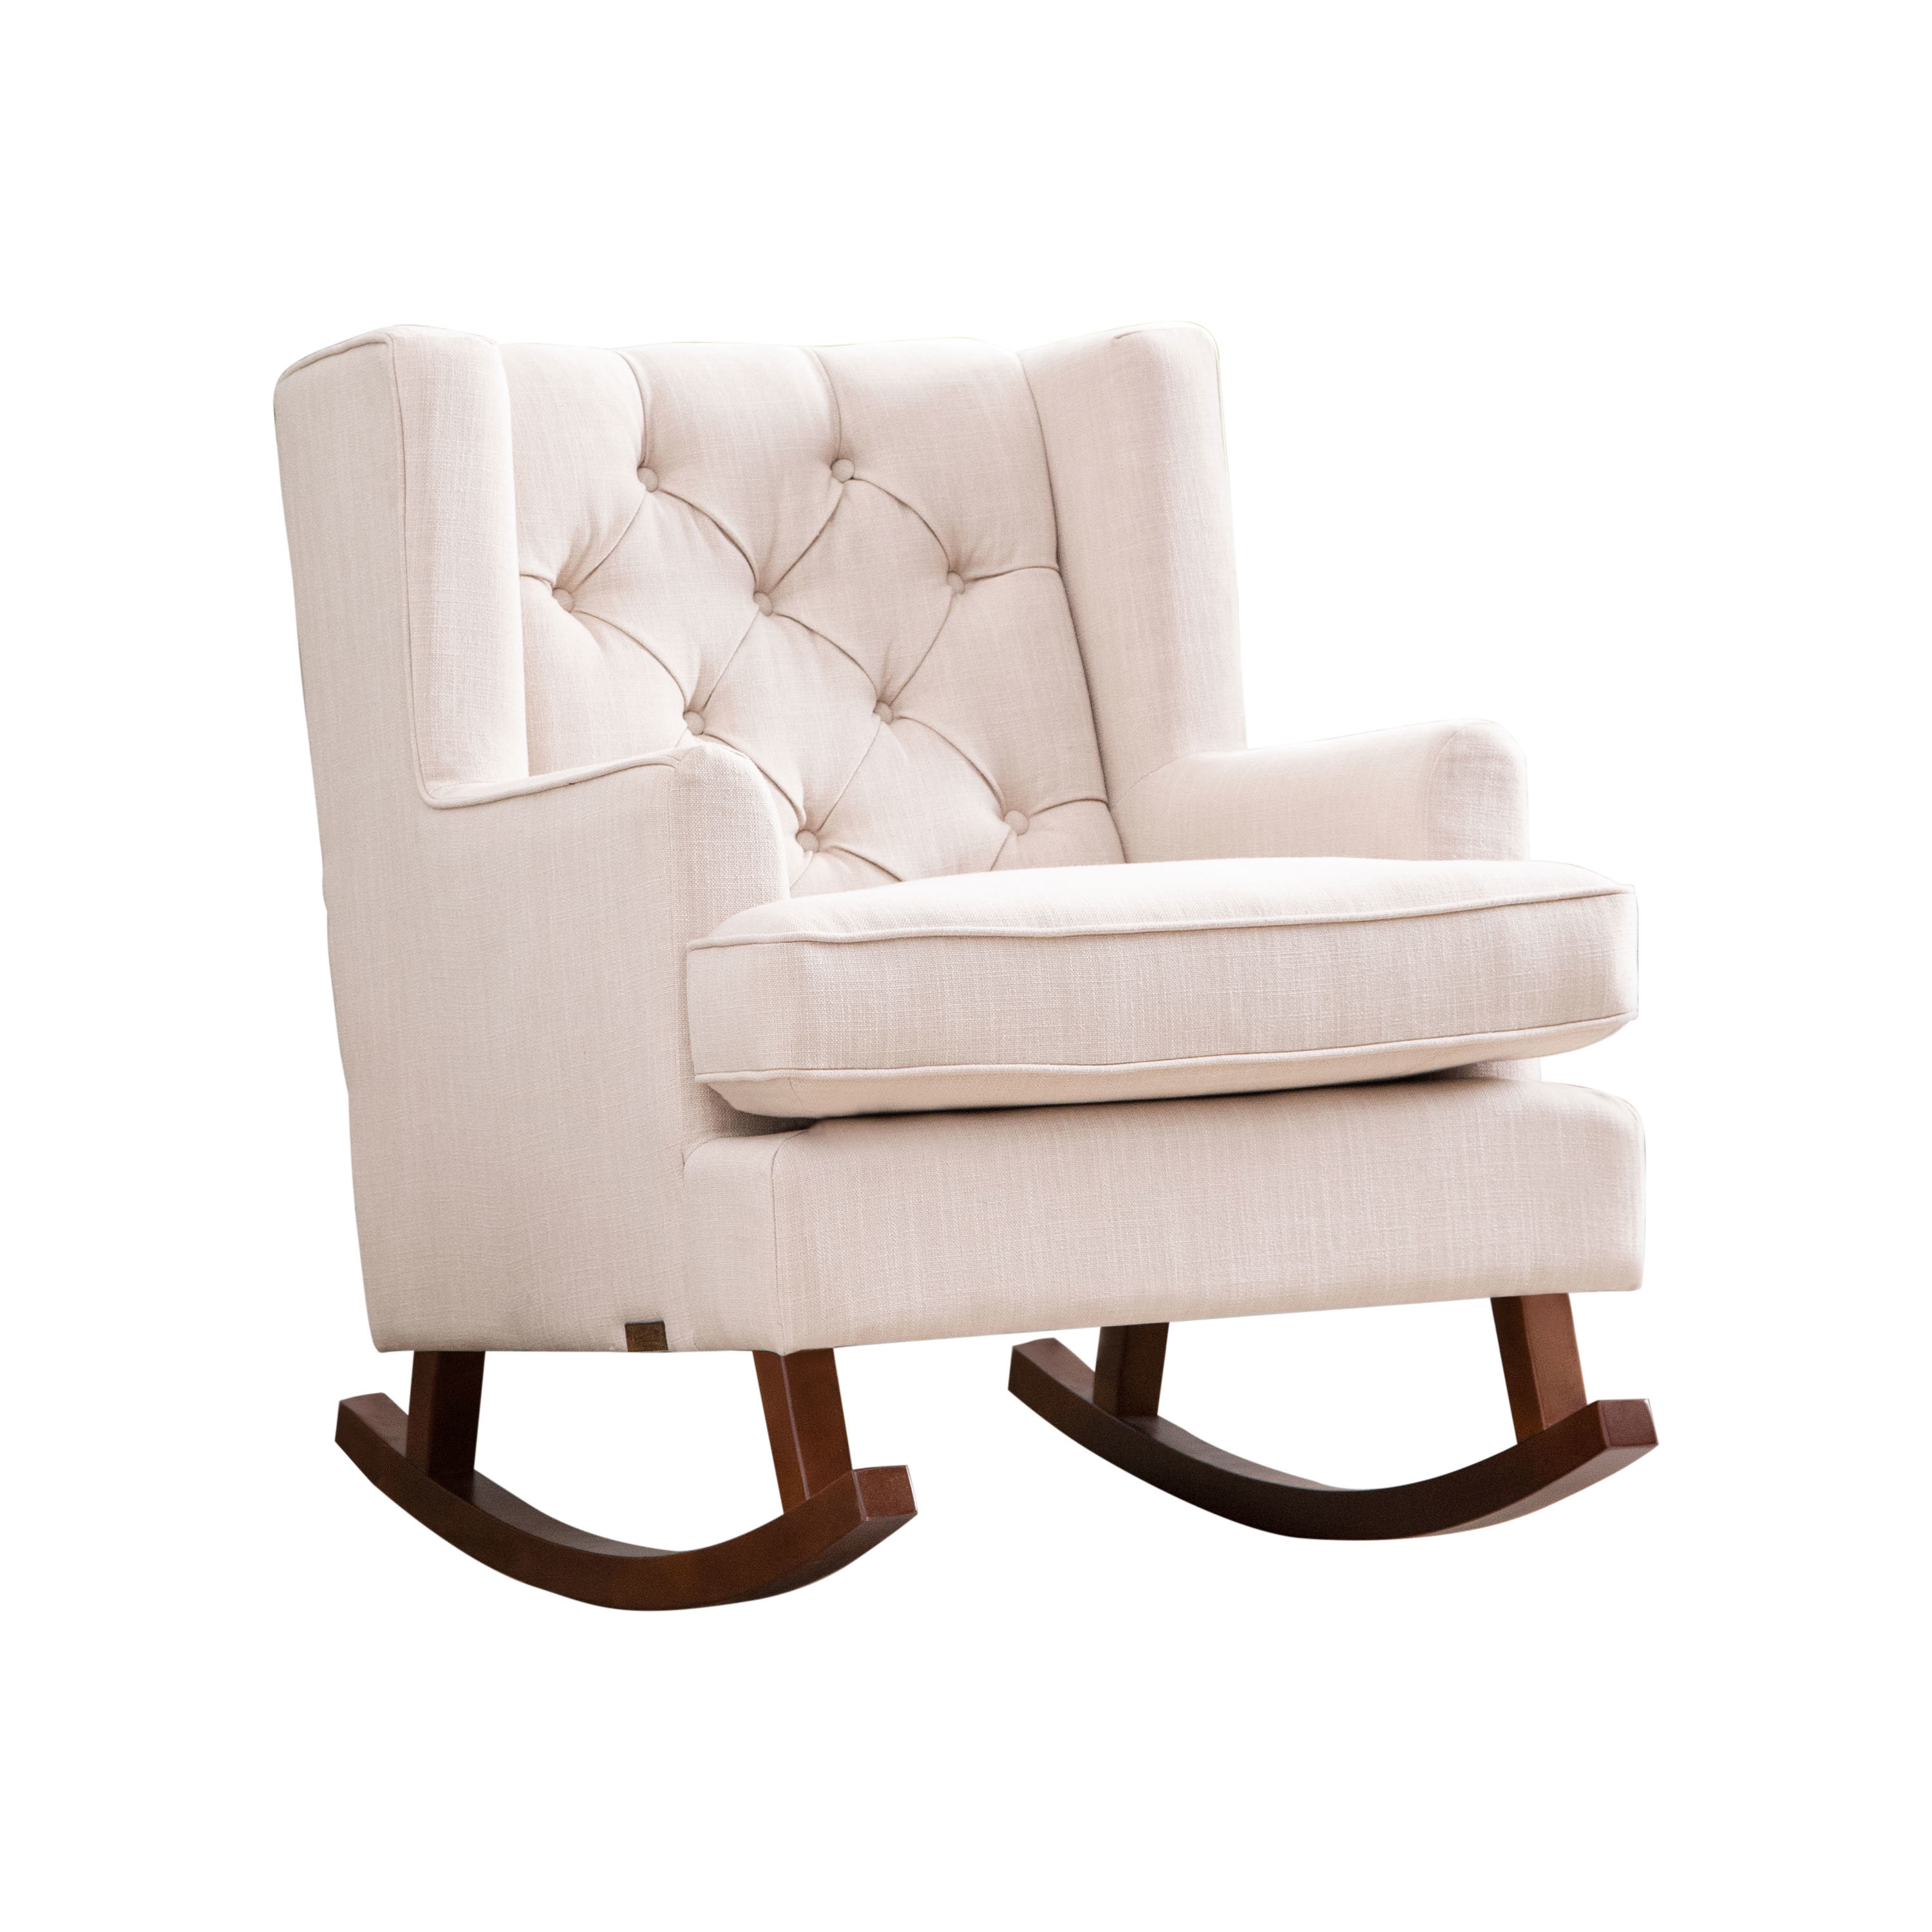 Abree Rocking Chair For Rocking Chairs In Linen Fabric With Brushed Finish Base (#1 of 20)